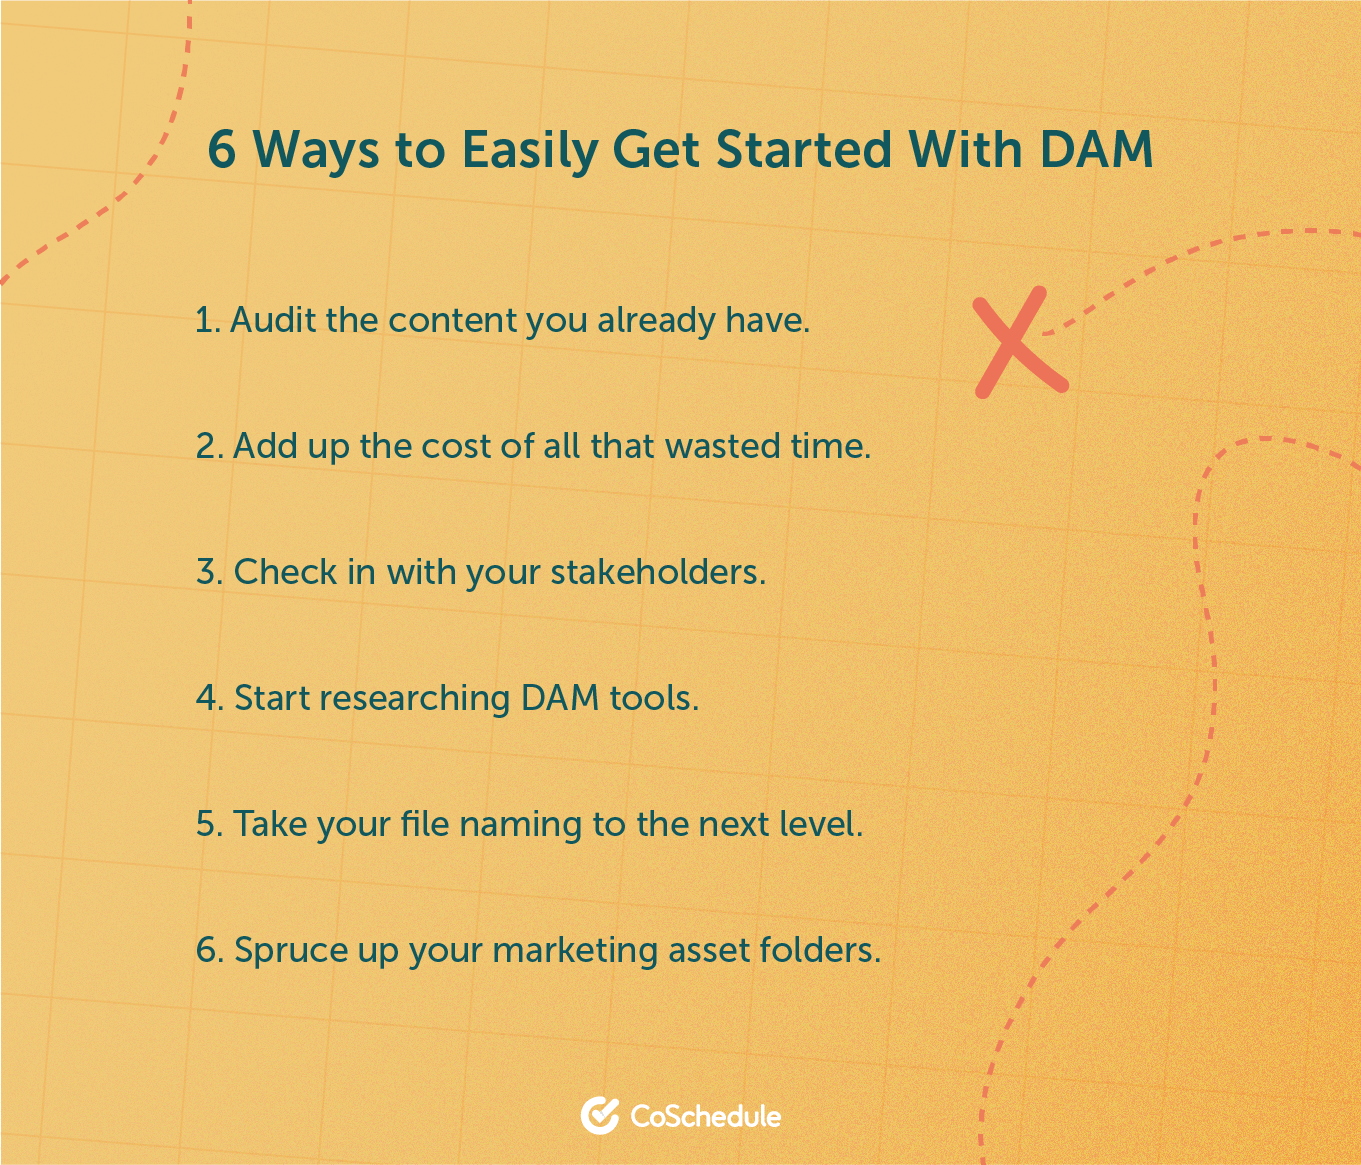 List of 6 ways to easily get started with DAM